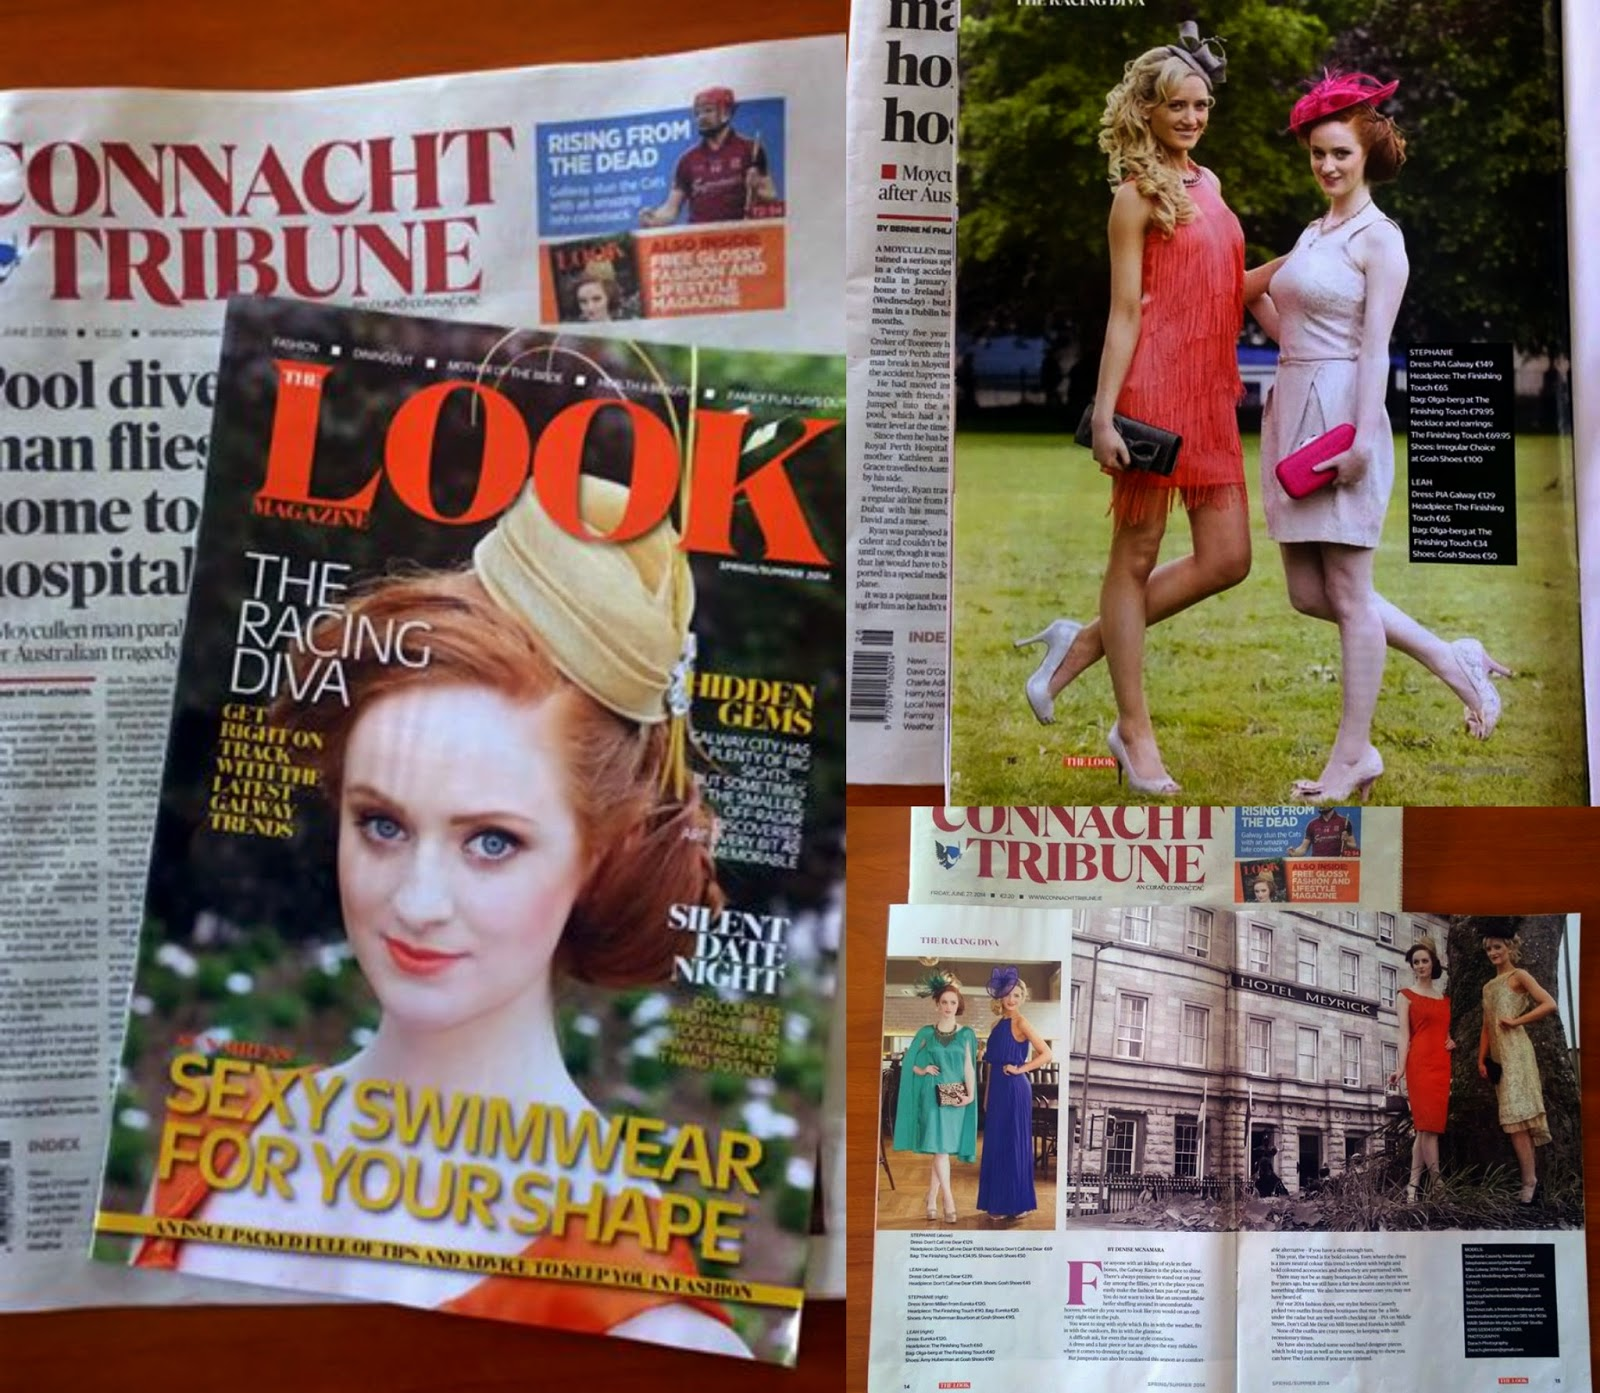 connacht tribune look magazine